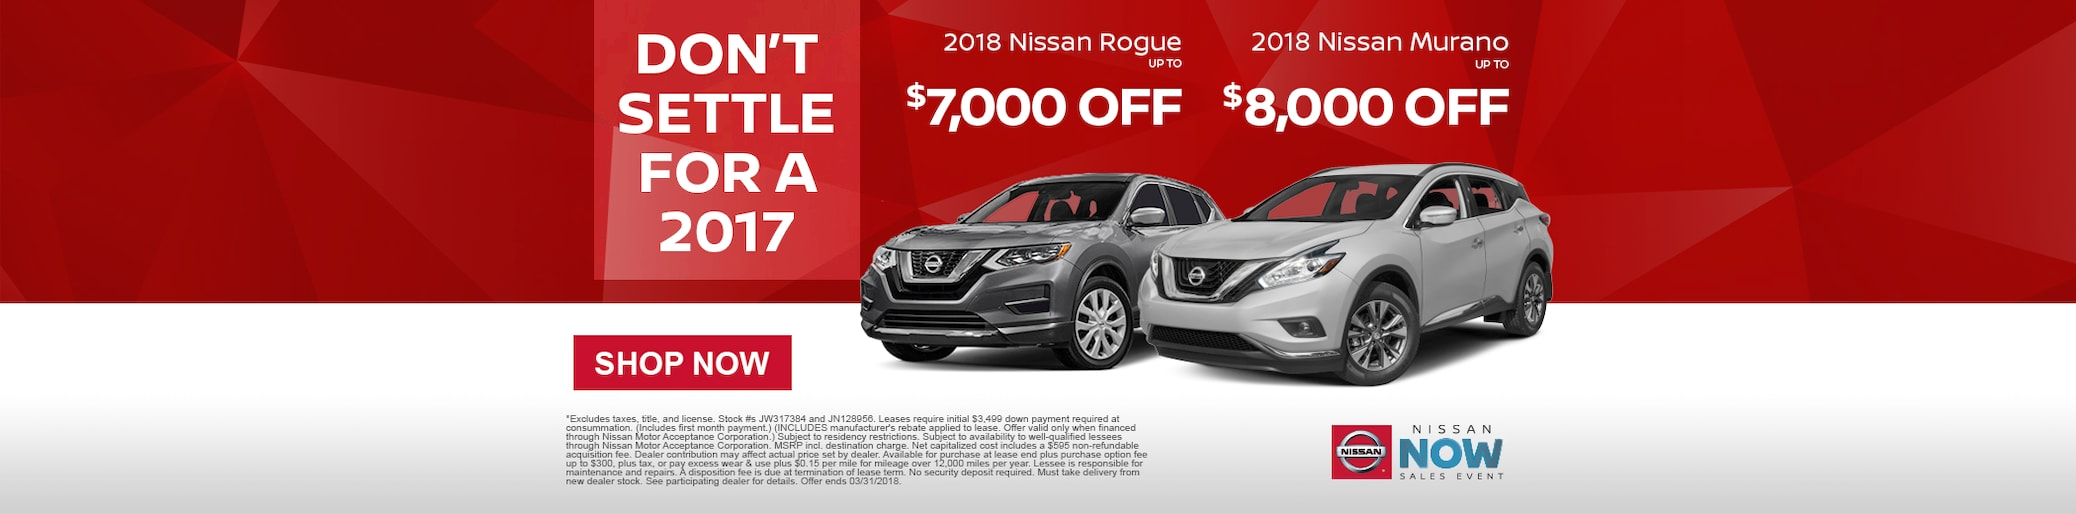 Crown nissan new nissan dealership serving greensboro high previous next 1betcityfo Choice Image